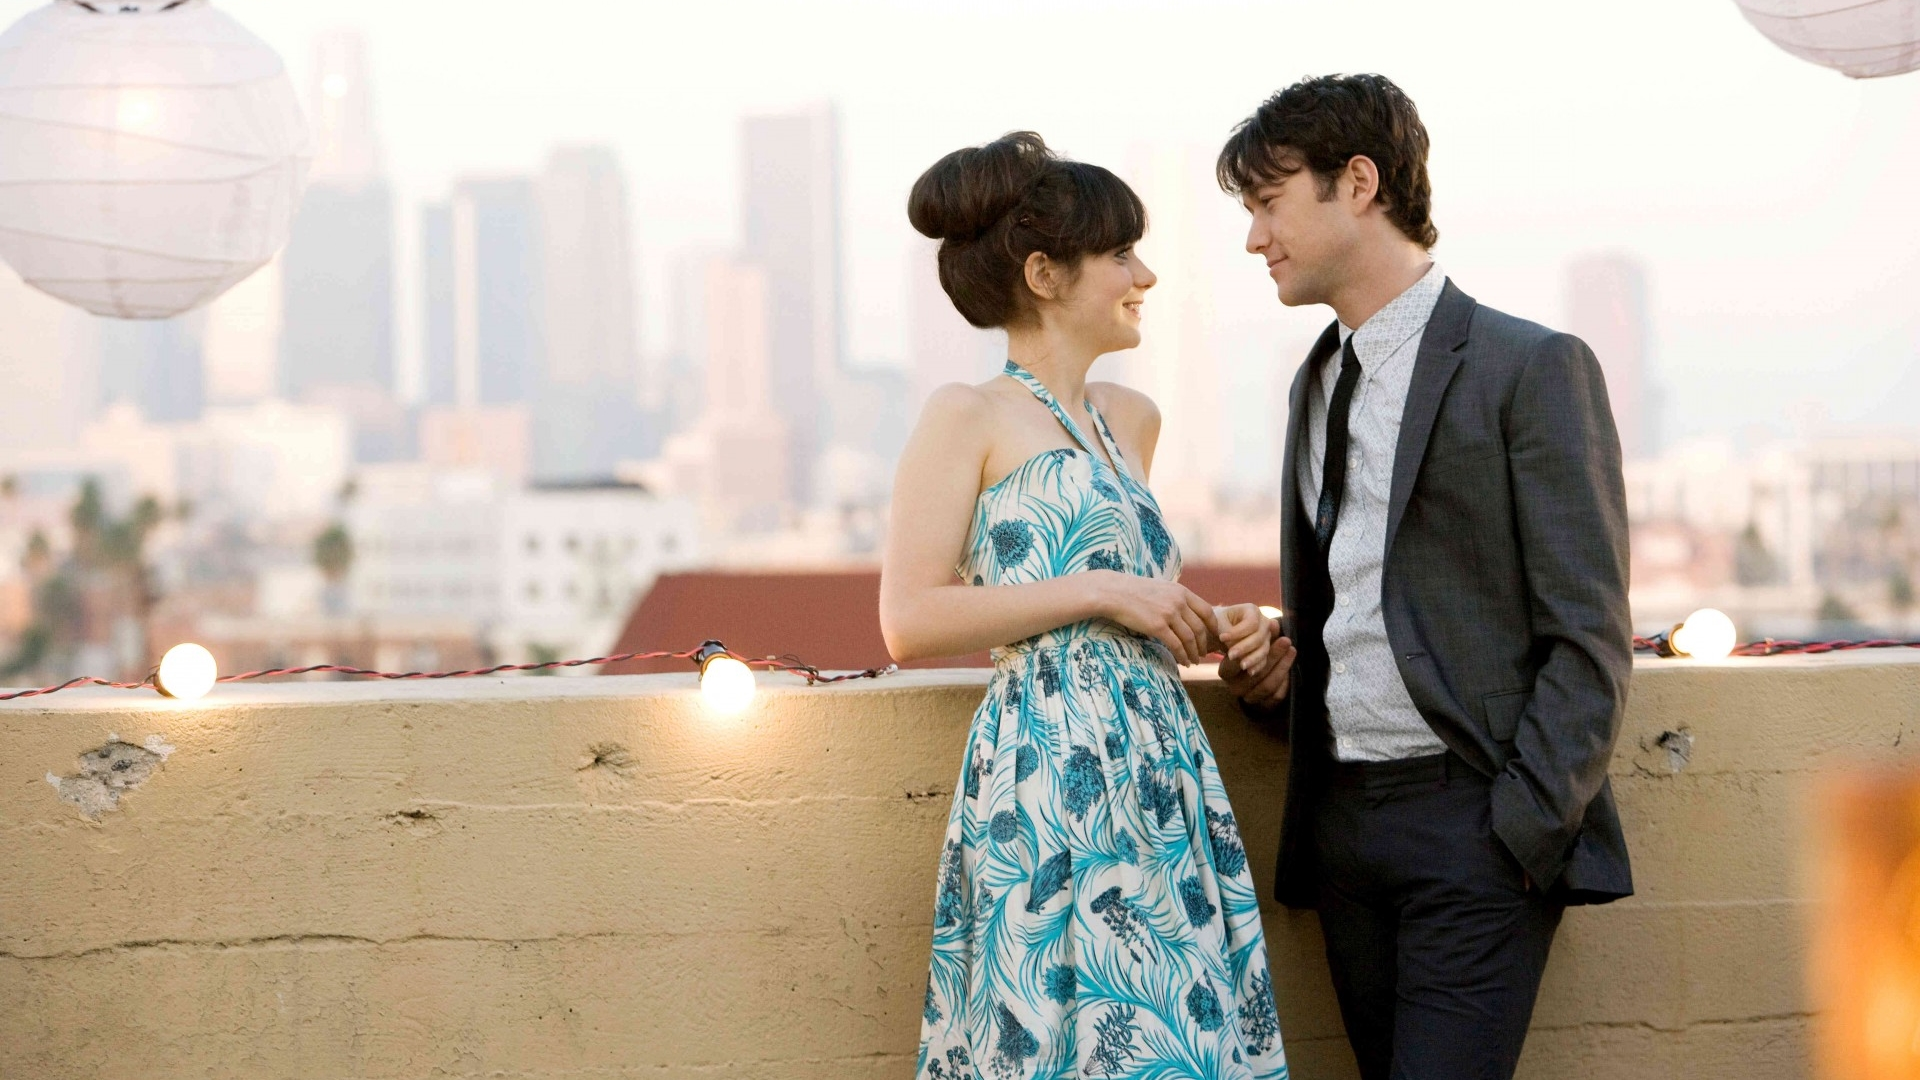 500 Days of Summer - Photo from The Guardian